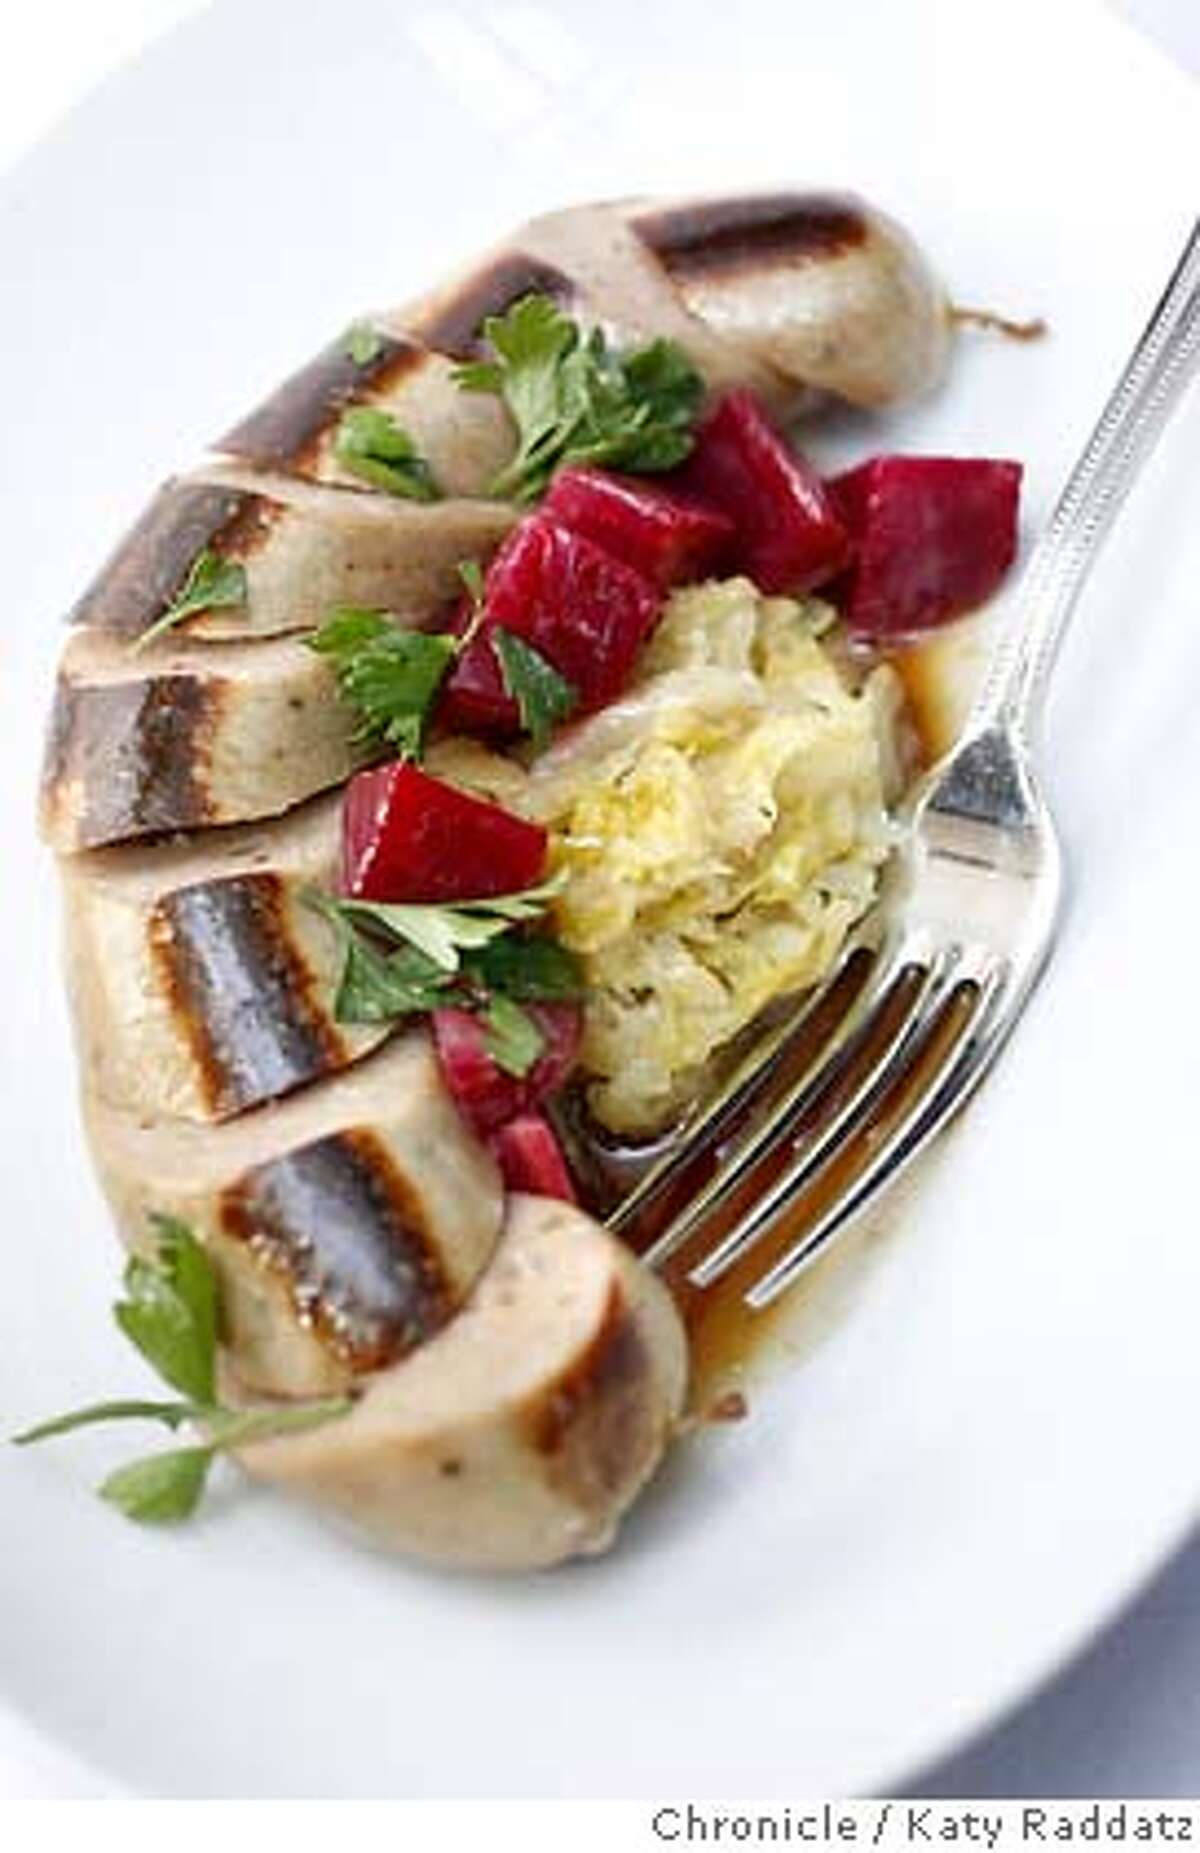 d.14SPRUCE_035_RAD.jpg SHOWN: Boudin Blanc with house made sauerkraut and beets from the restaurant's farm. Spruce is an important restaurant that has just opened in San Francisco at 3640 Sacramento St. (Katy Raddatz/The Chronicle) **